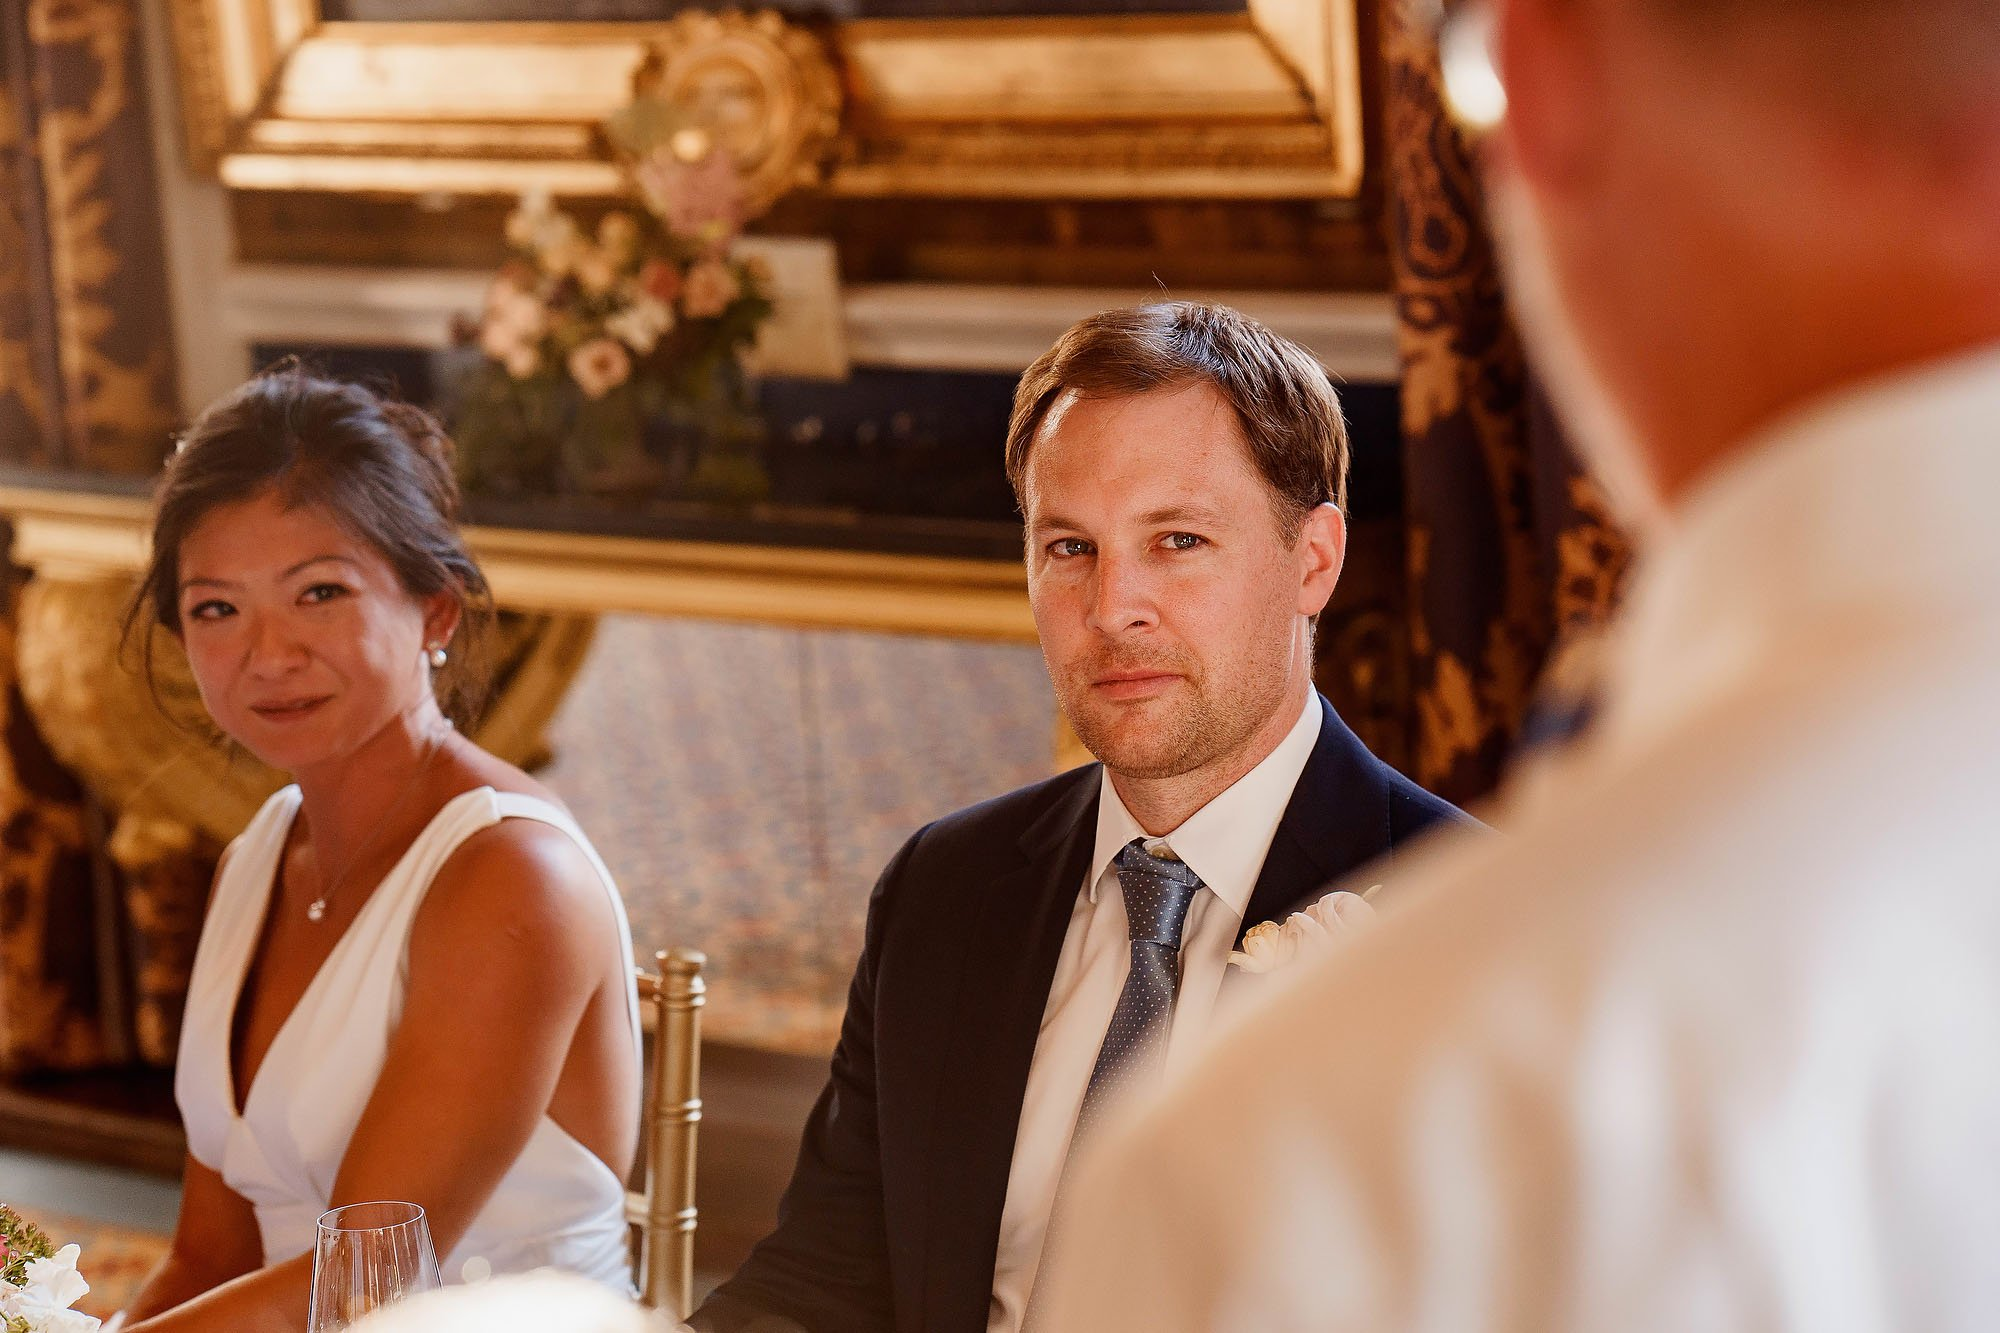 Islington London + 116 Pall Mall wedding - ARJ Photography®